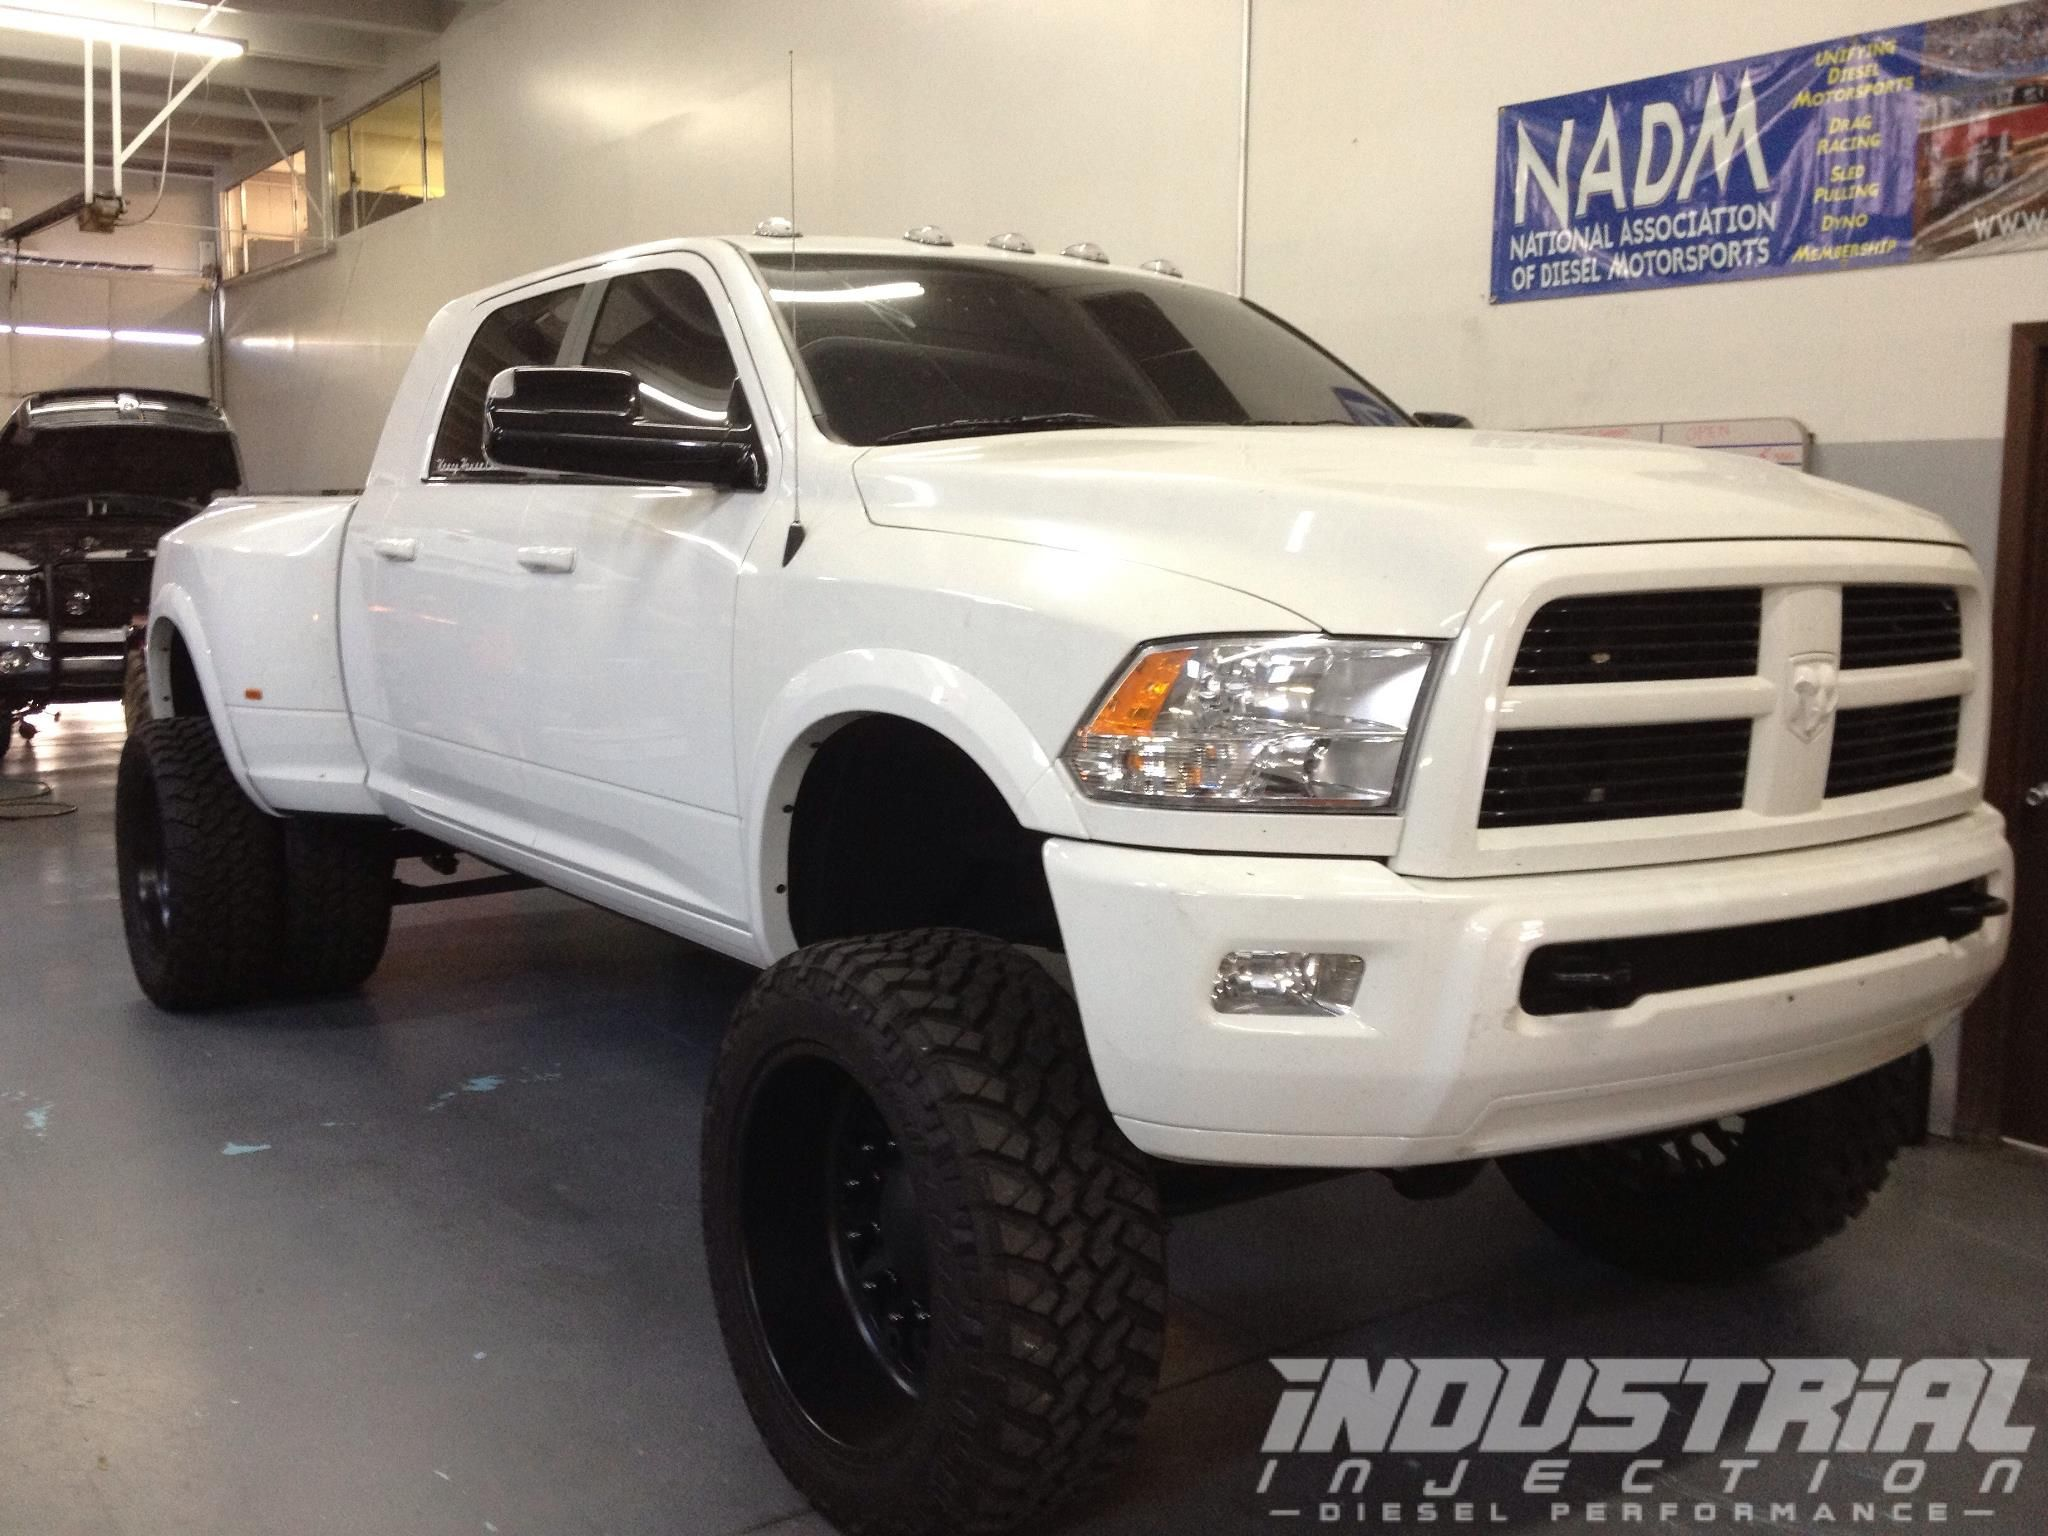 Industrial Injection's 4th gen dually. Diesels